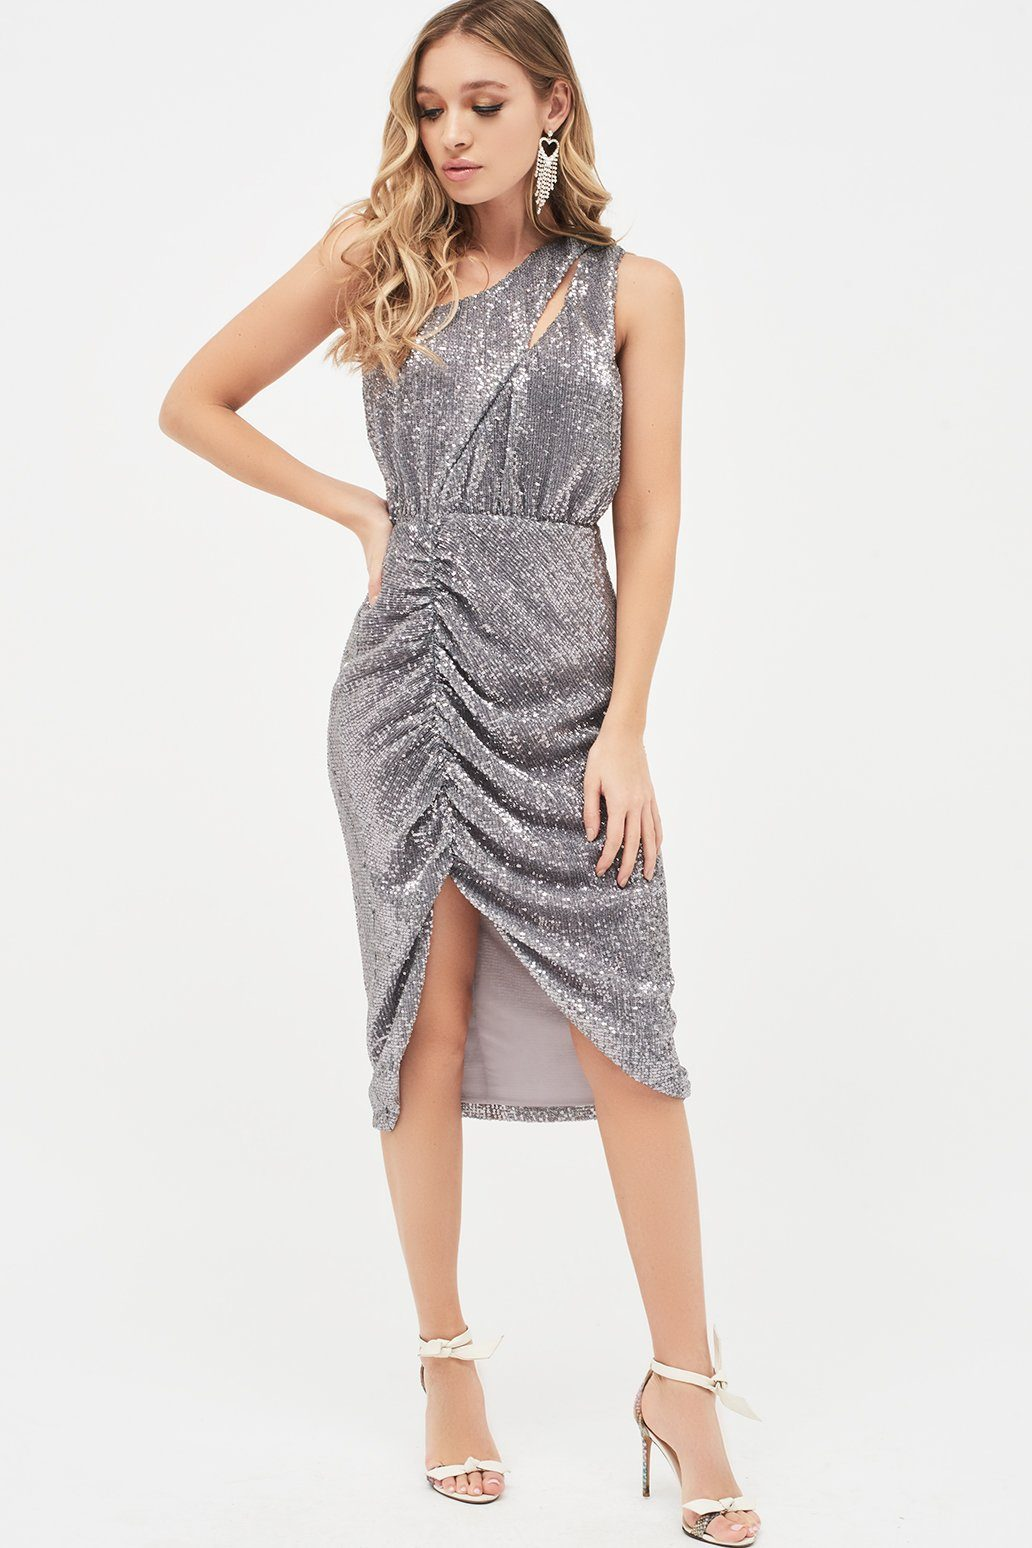 Lavish Alice Pleated Sequin One Shoulder Cut Out Ruched Side Midi Dress in Grey